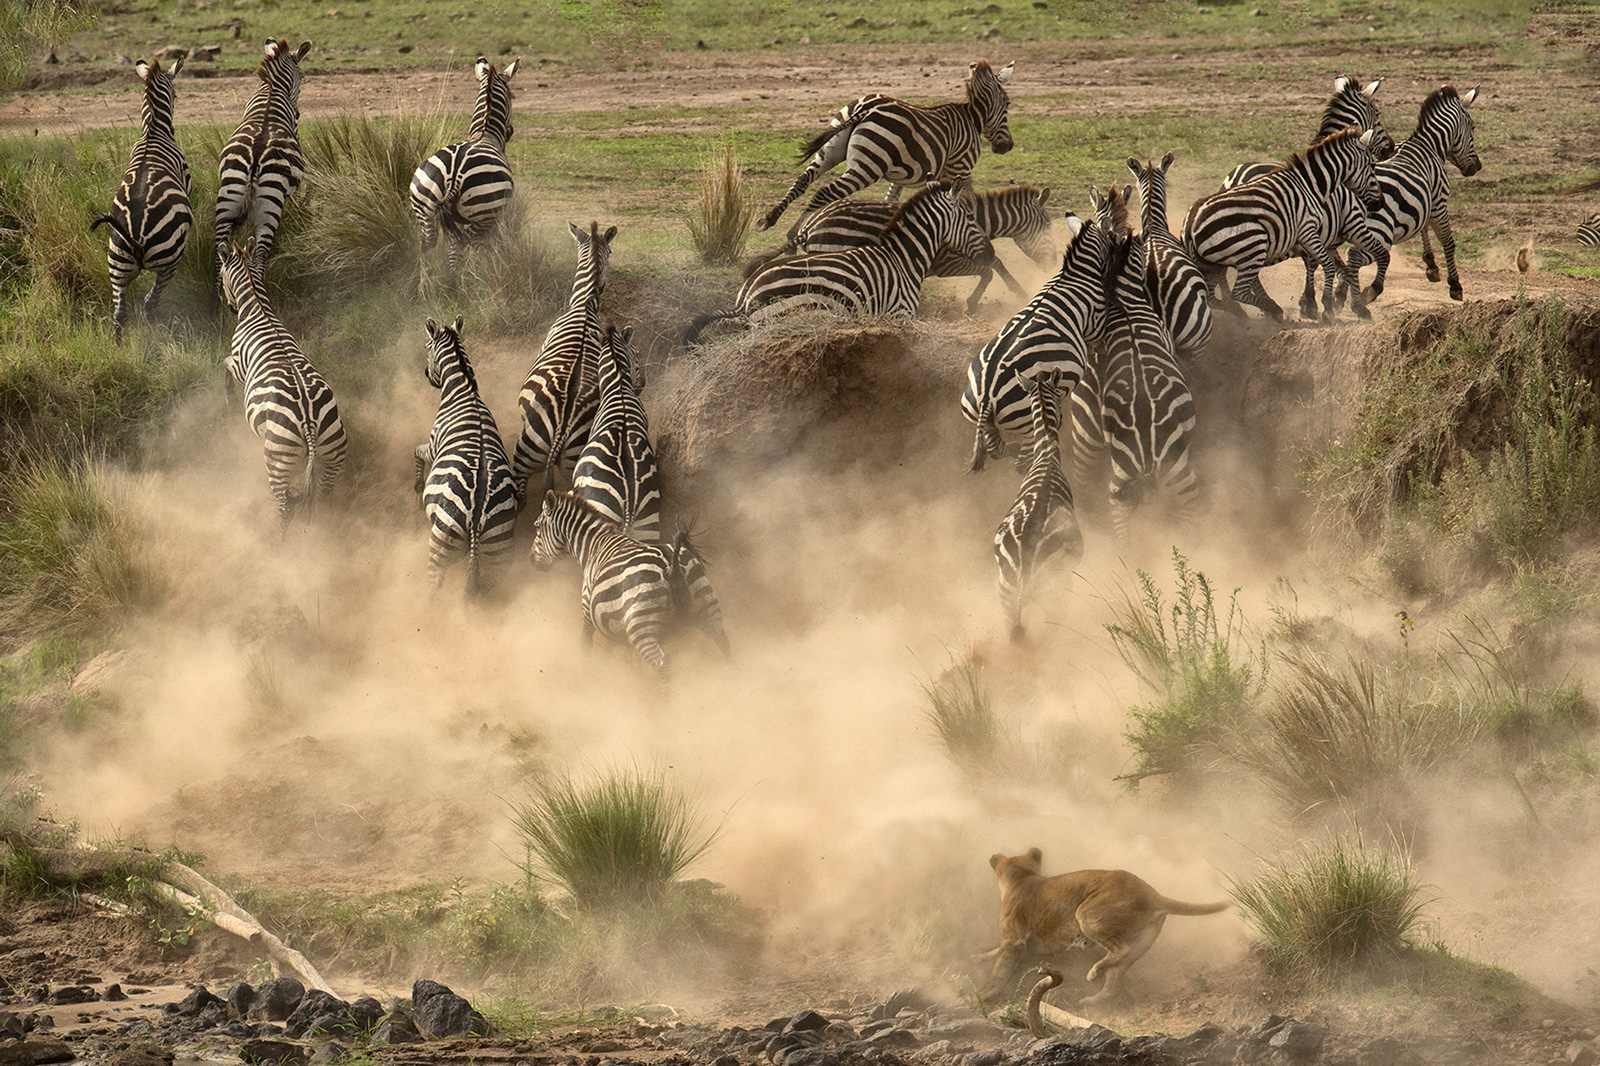 A failed ambush along the Mara River in Kenya ©Diana Knight